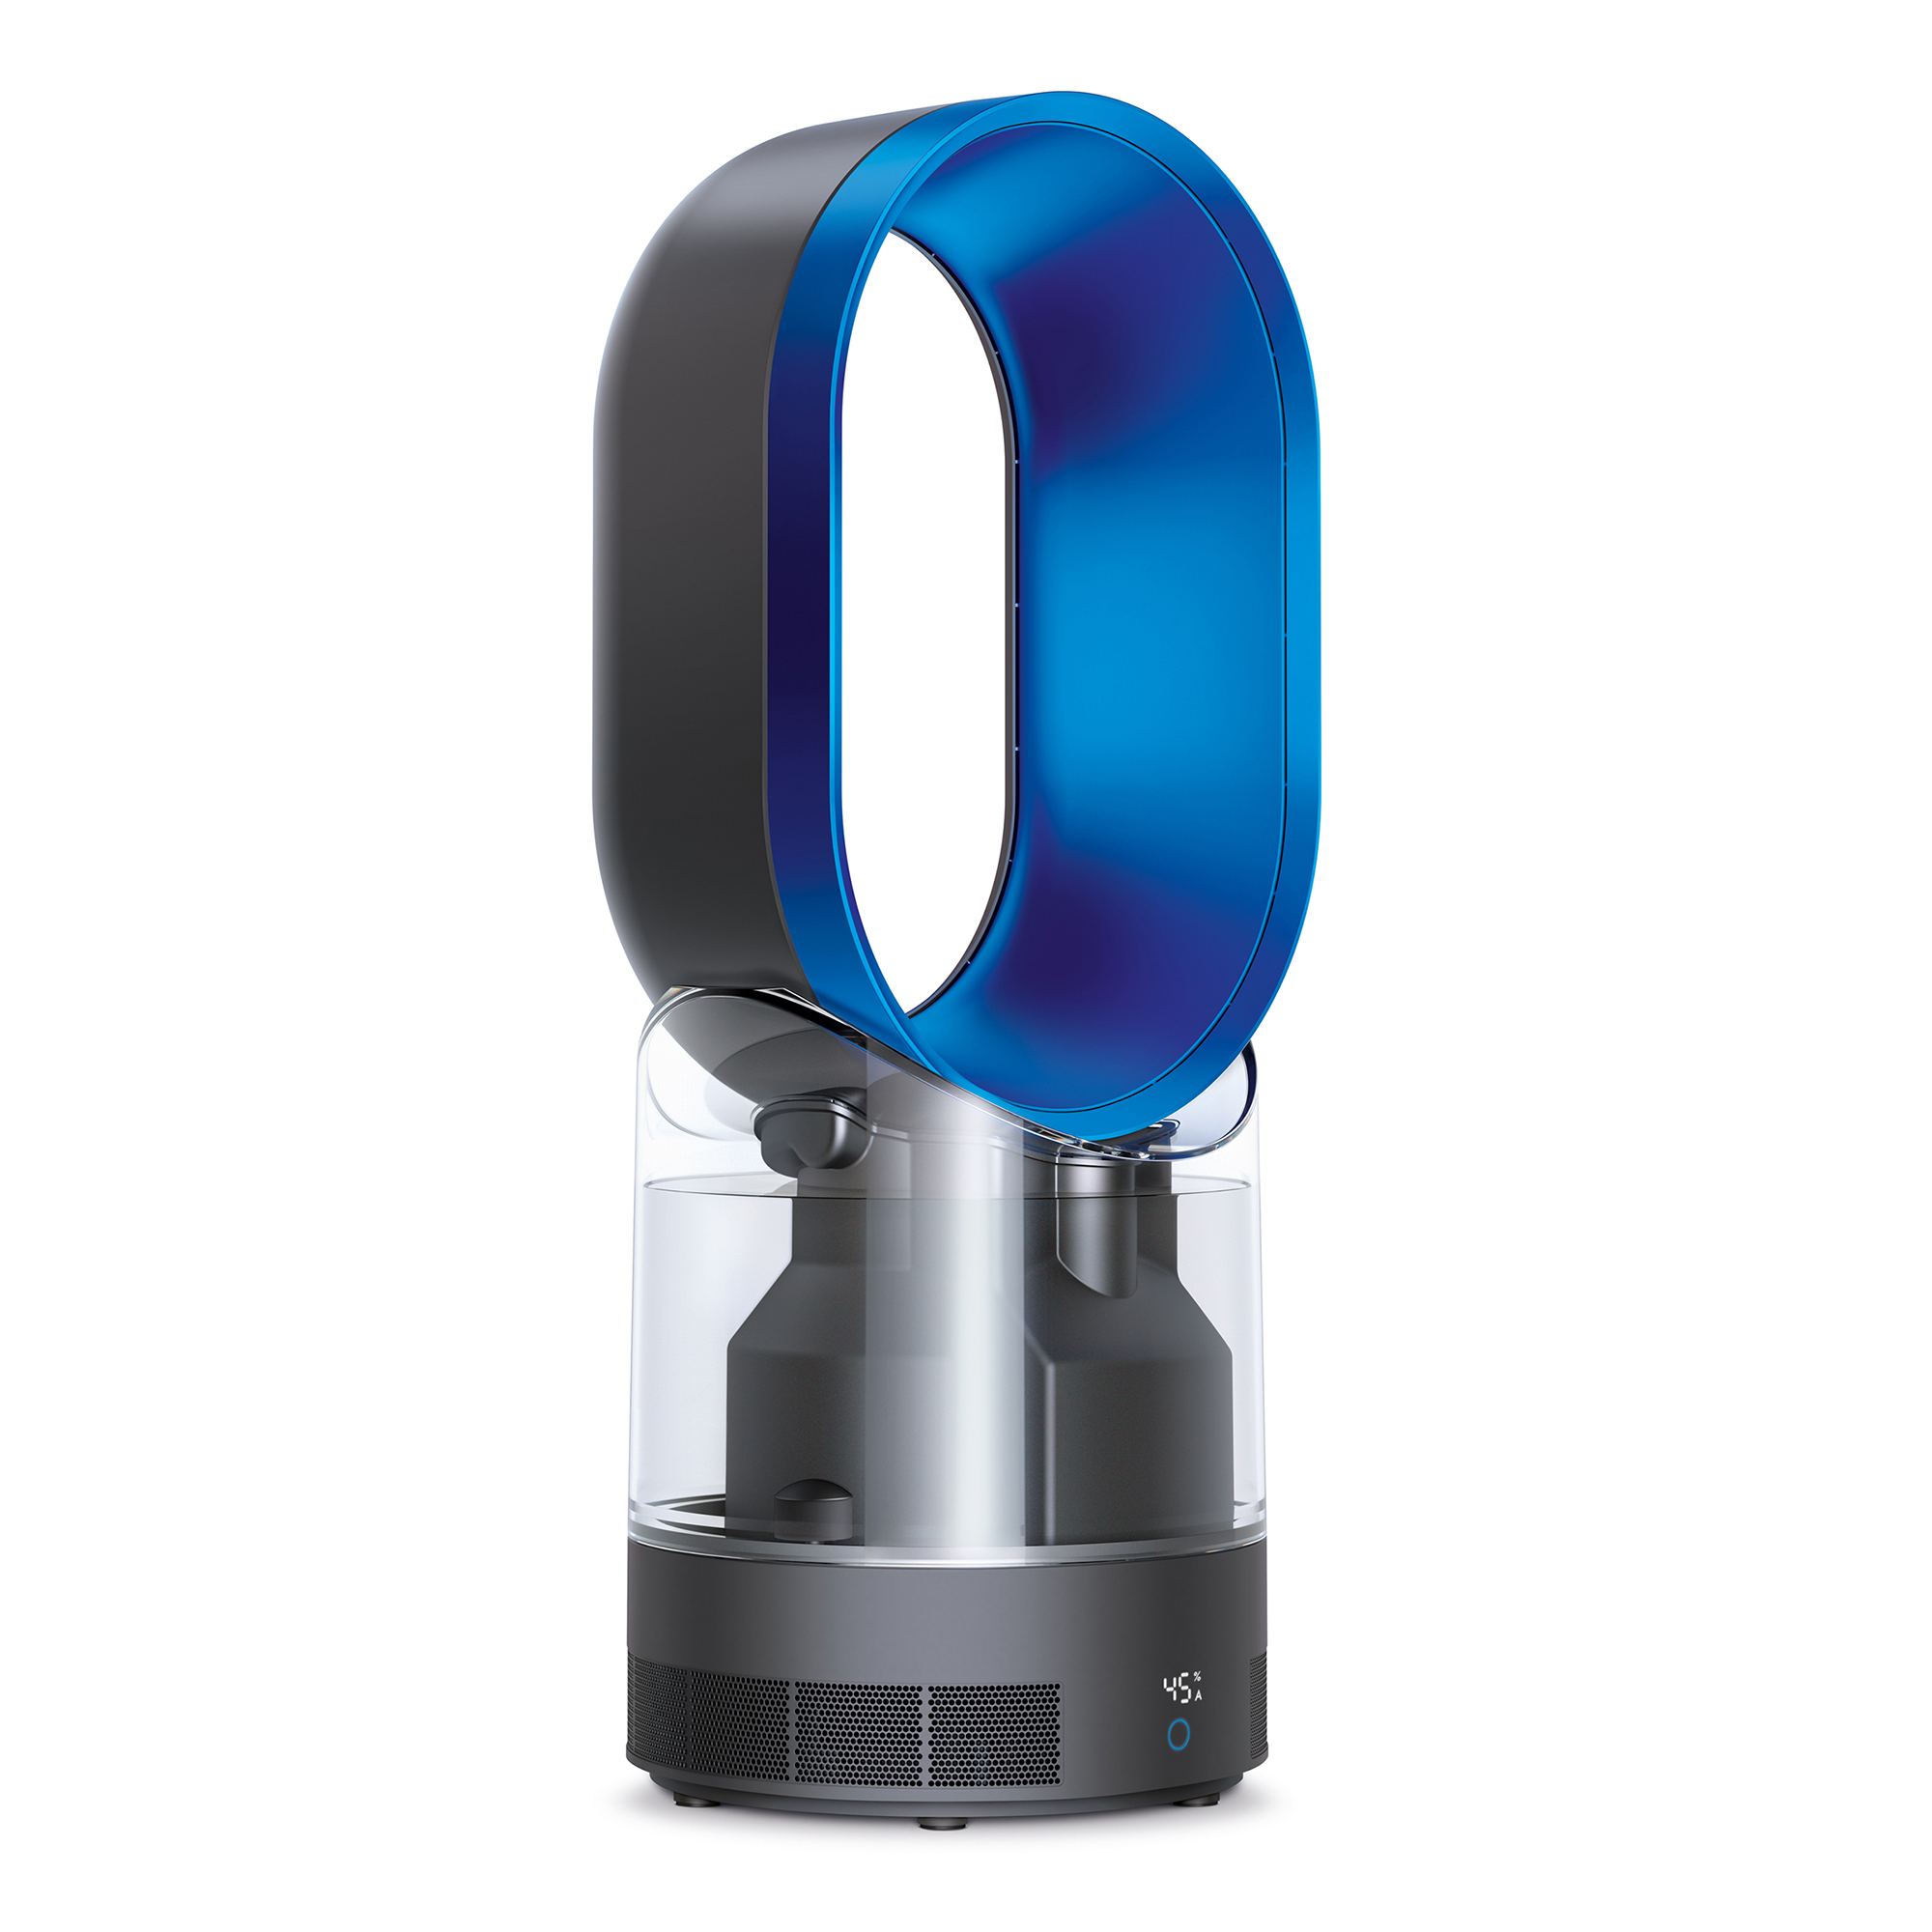 dyson am10 humidifier fan 3 colors refurbished ebay. Black Bedroom Furniture Sets. Home Design Ideas